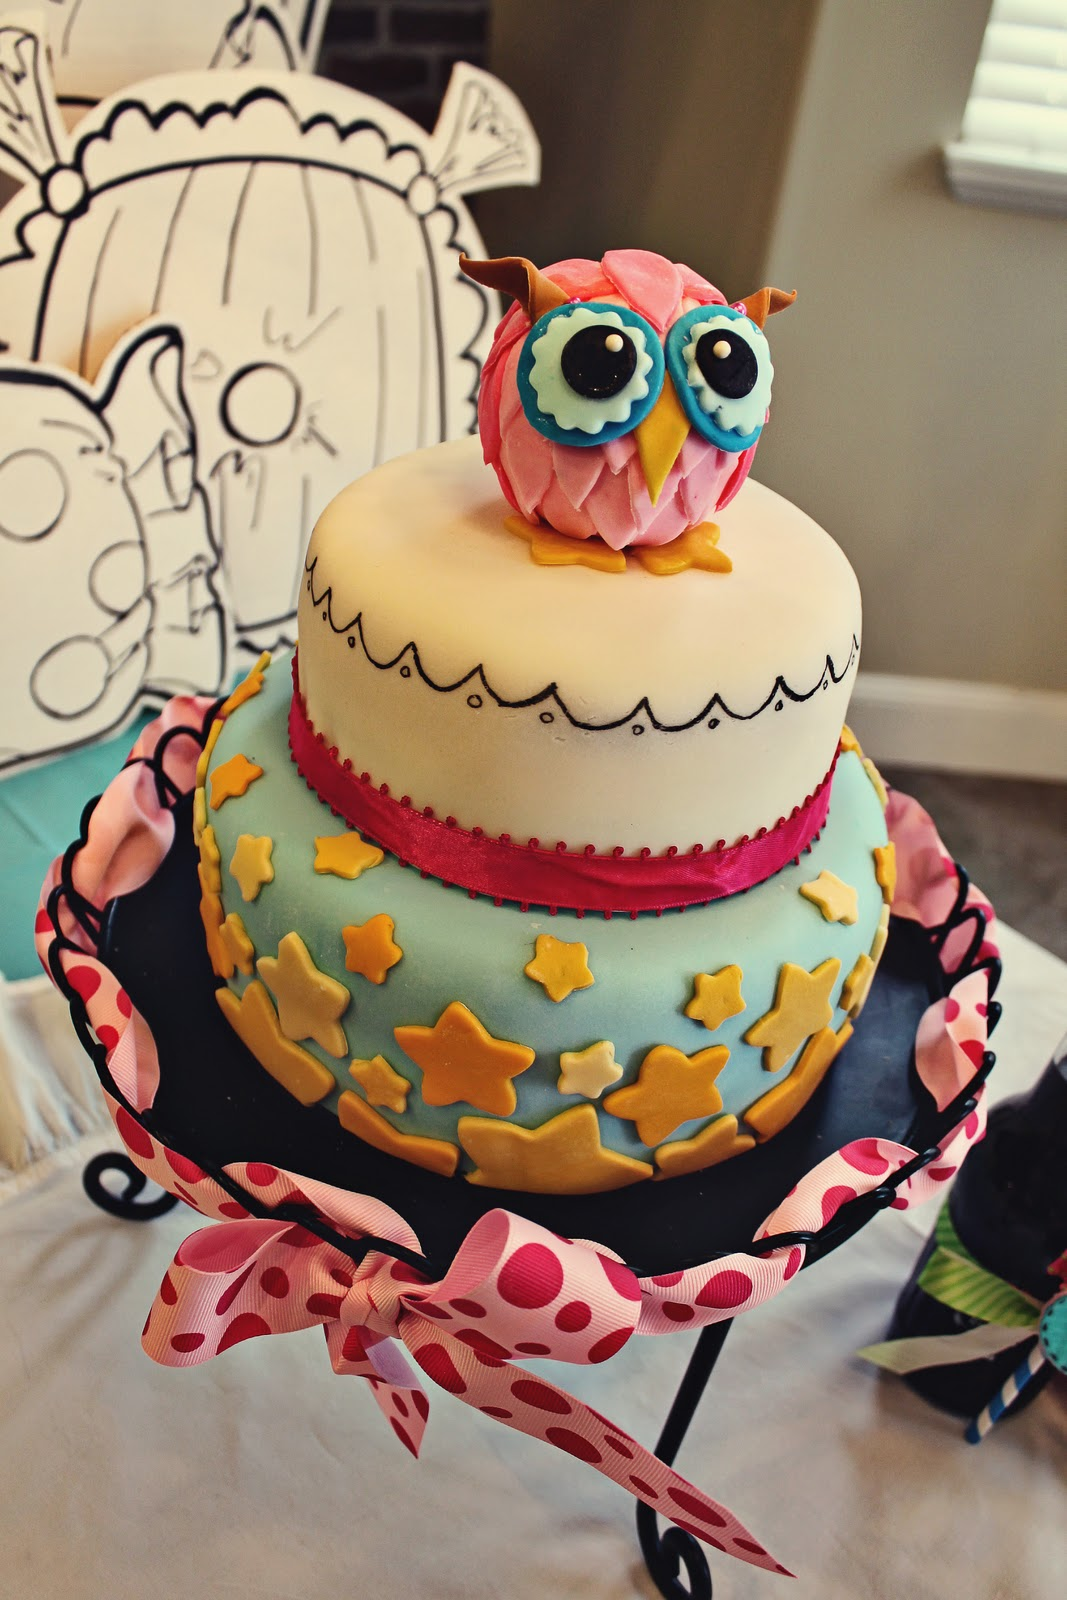 Sculpted Owl Cake 3rd Place Winner By Cakebuds